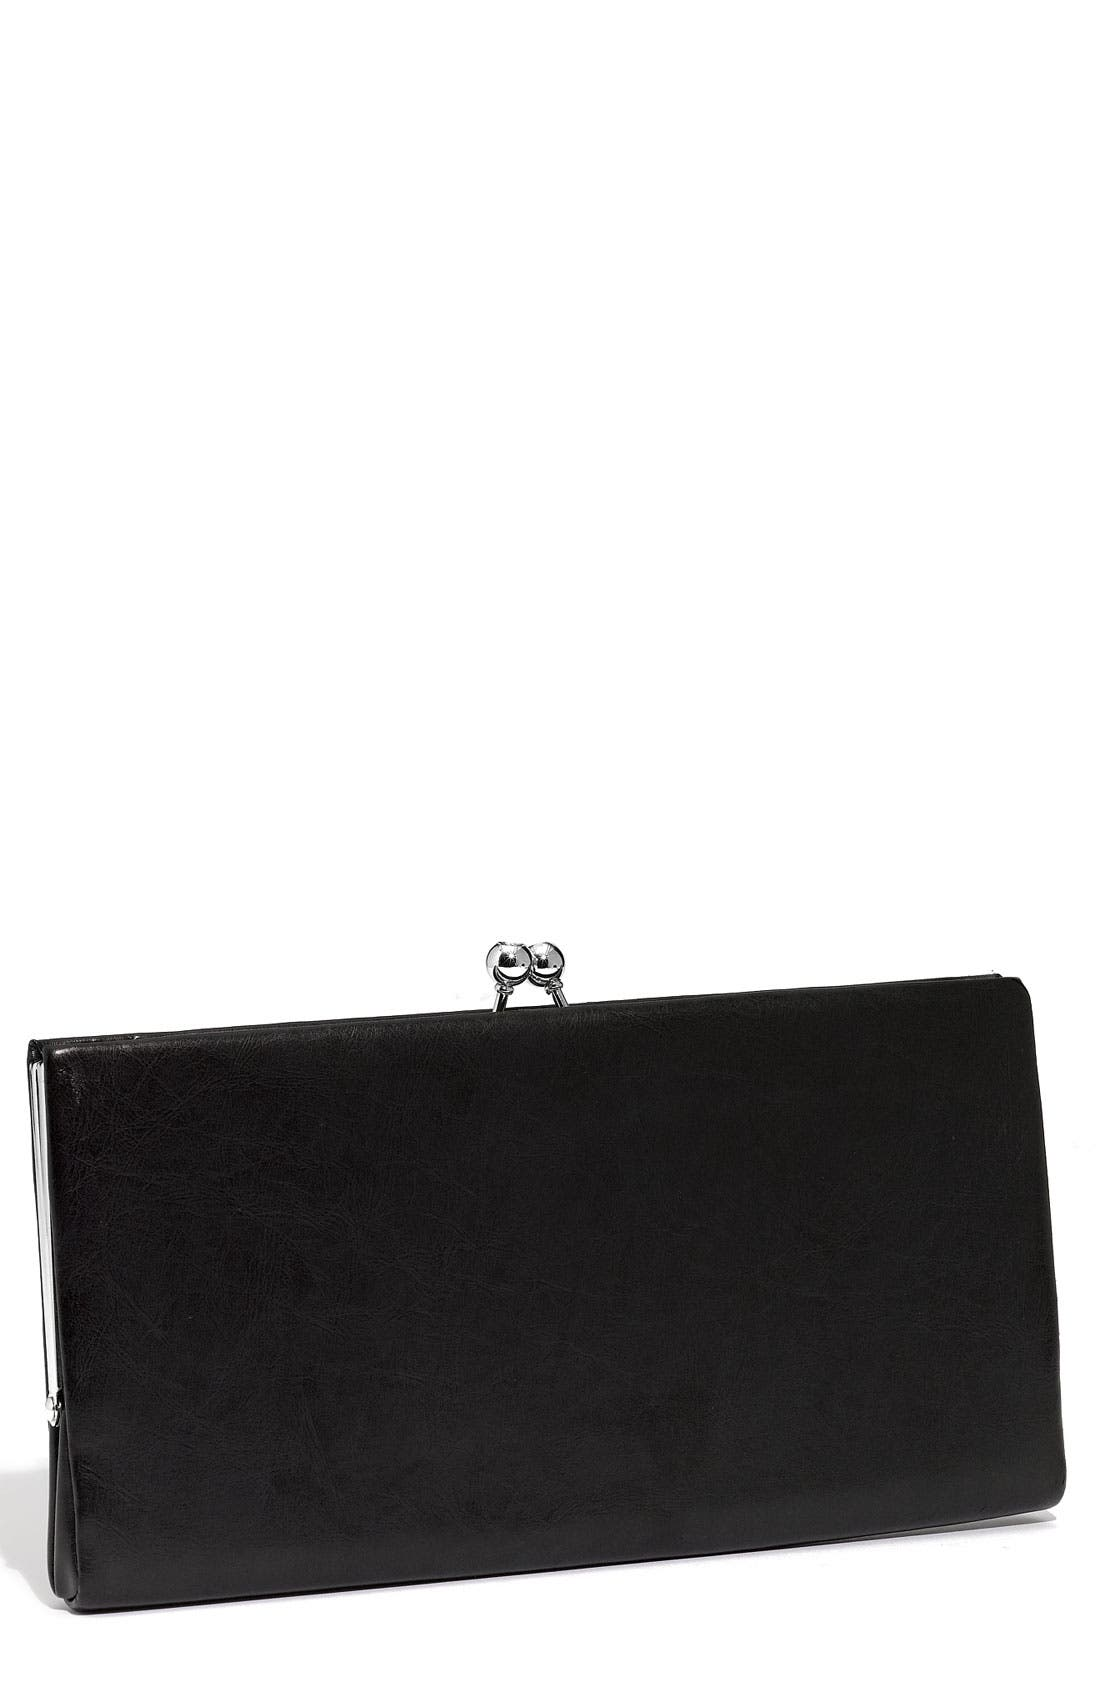 Alternate Image 1 Selected - Top Choice 'Vintage' Clutch